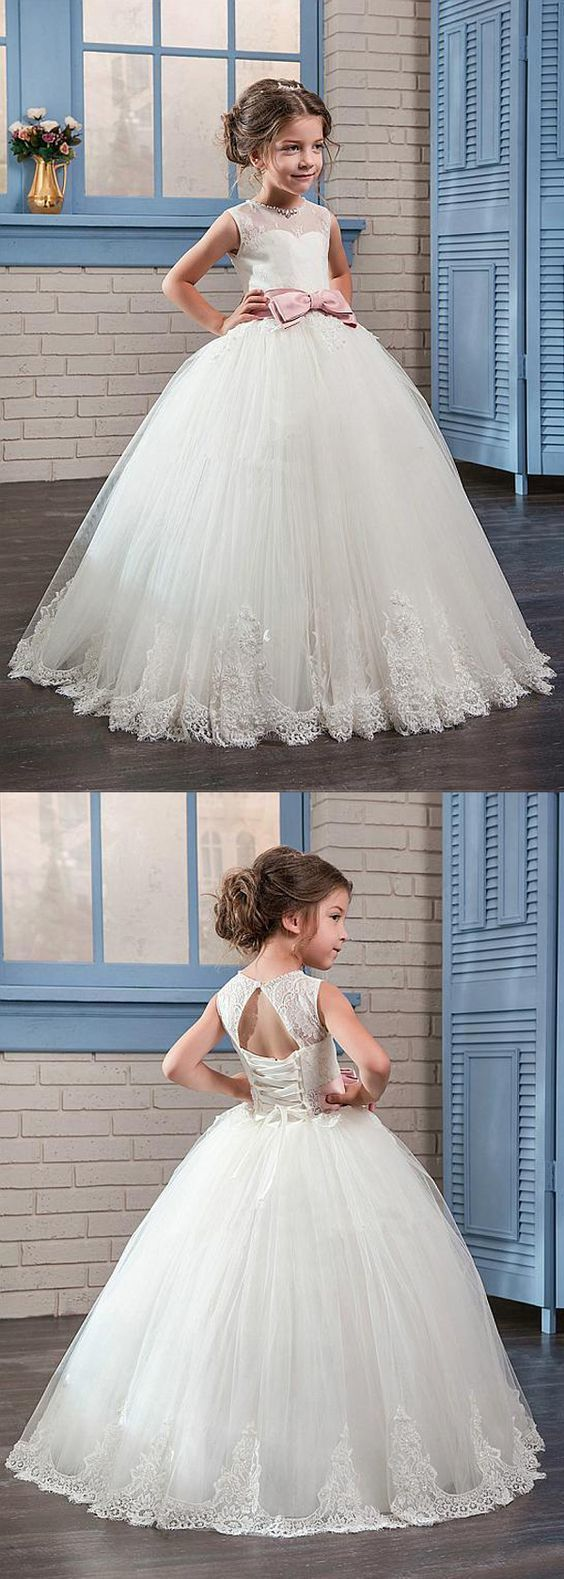 Amazing tulle u lace jewel neckline ball gown flower girl dresses